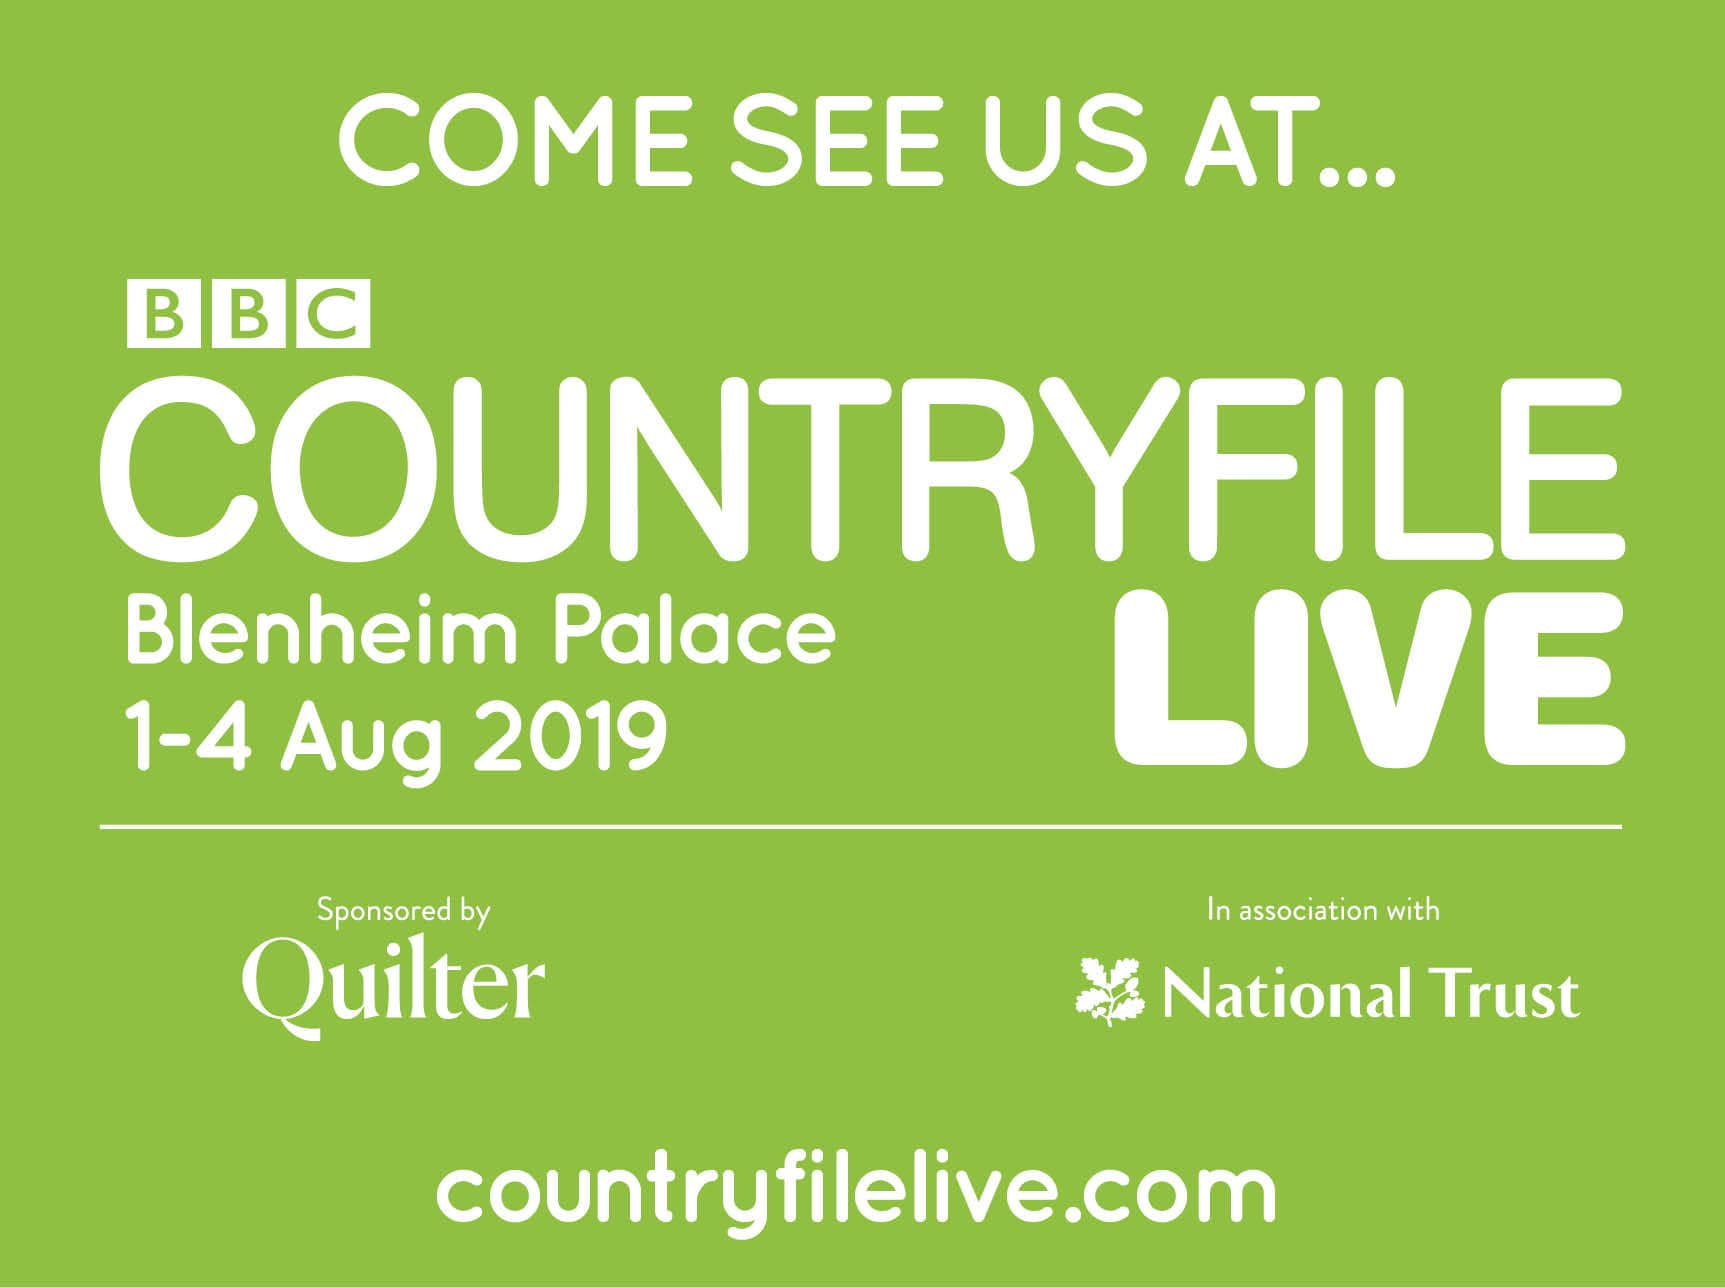 Garden fencing manufacturer at CountryFile Live exhibition in Blenheim Palace